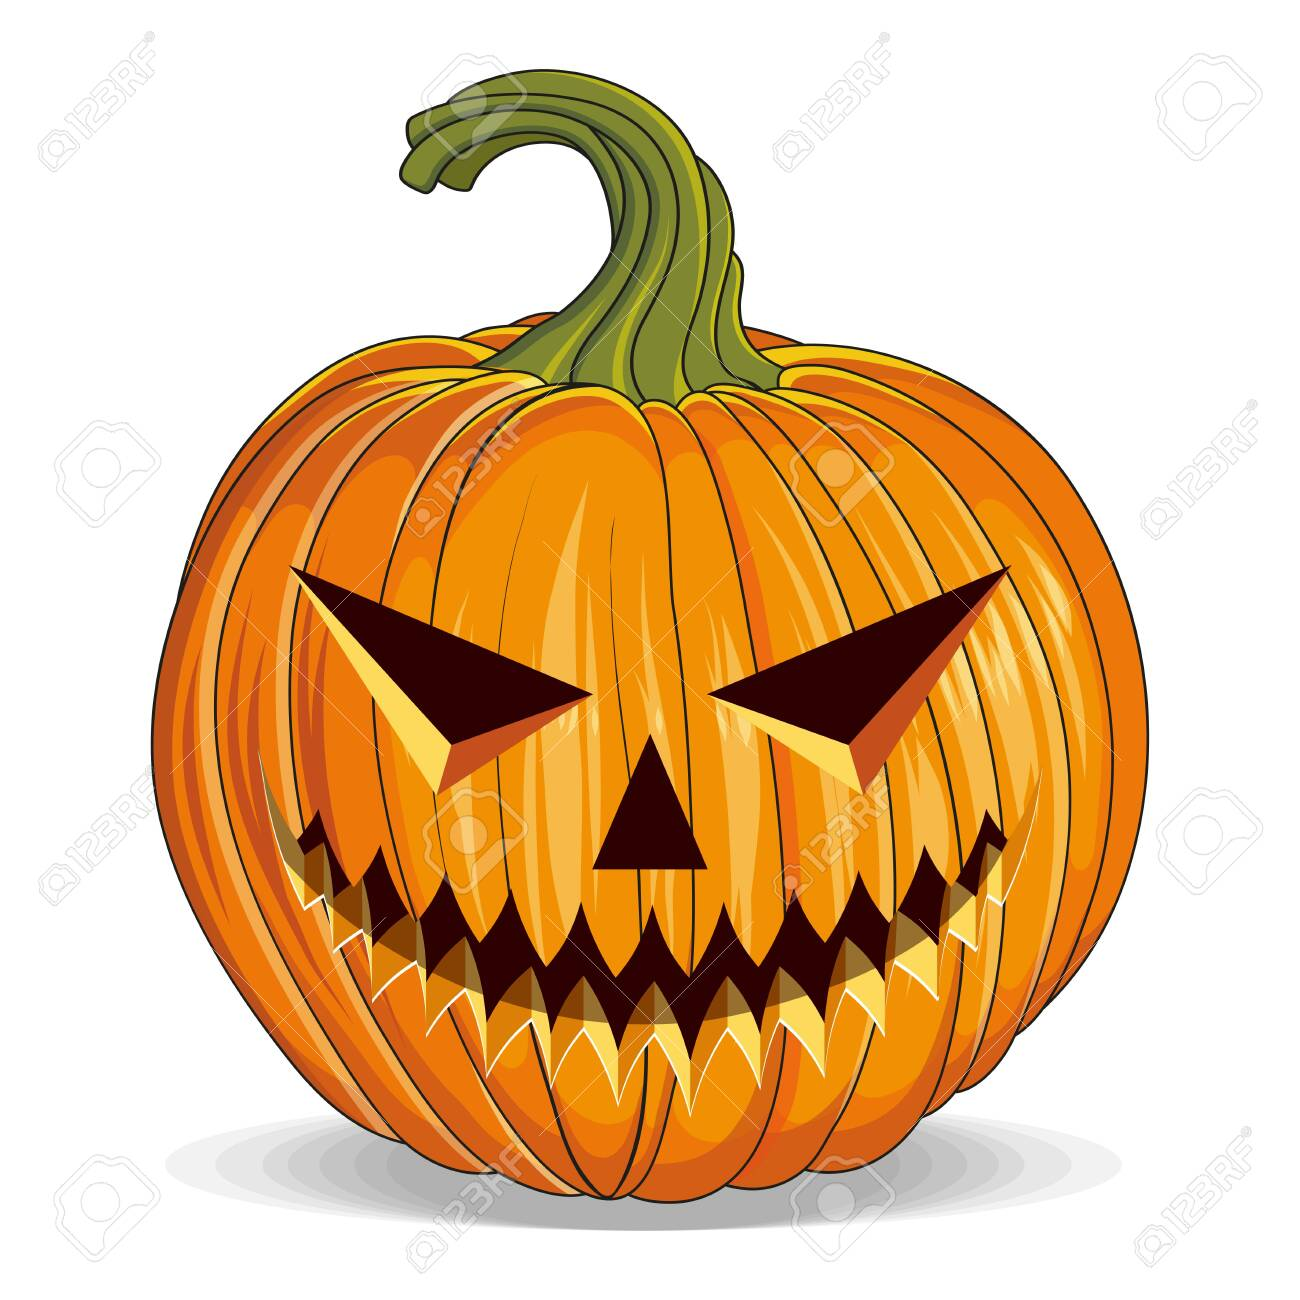 Halloween Pumpkin With Cut Out Eyes Happy Halloween Holiday Royalty Free Cliparts Vectors And Stock Illustration Image 129681052